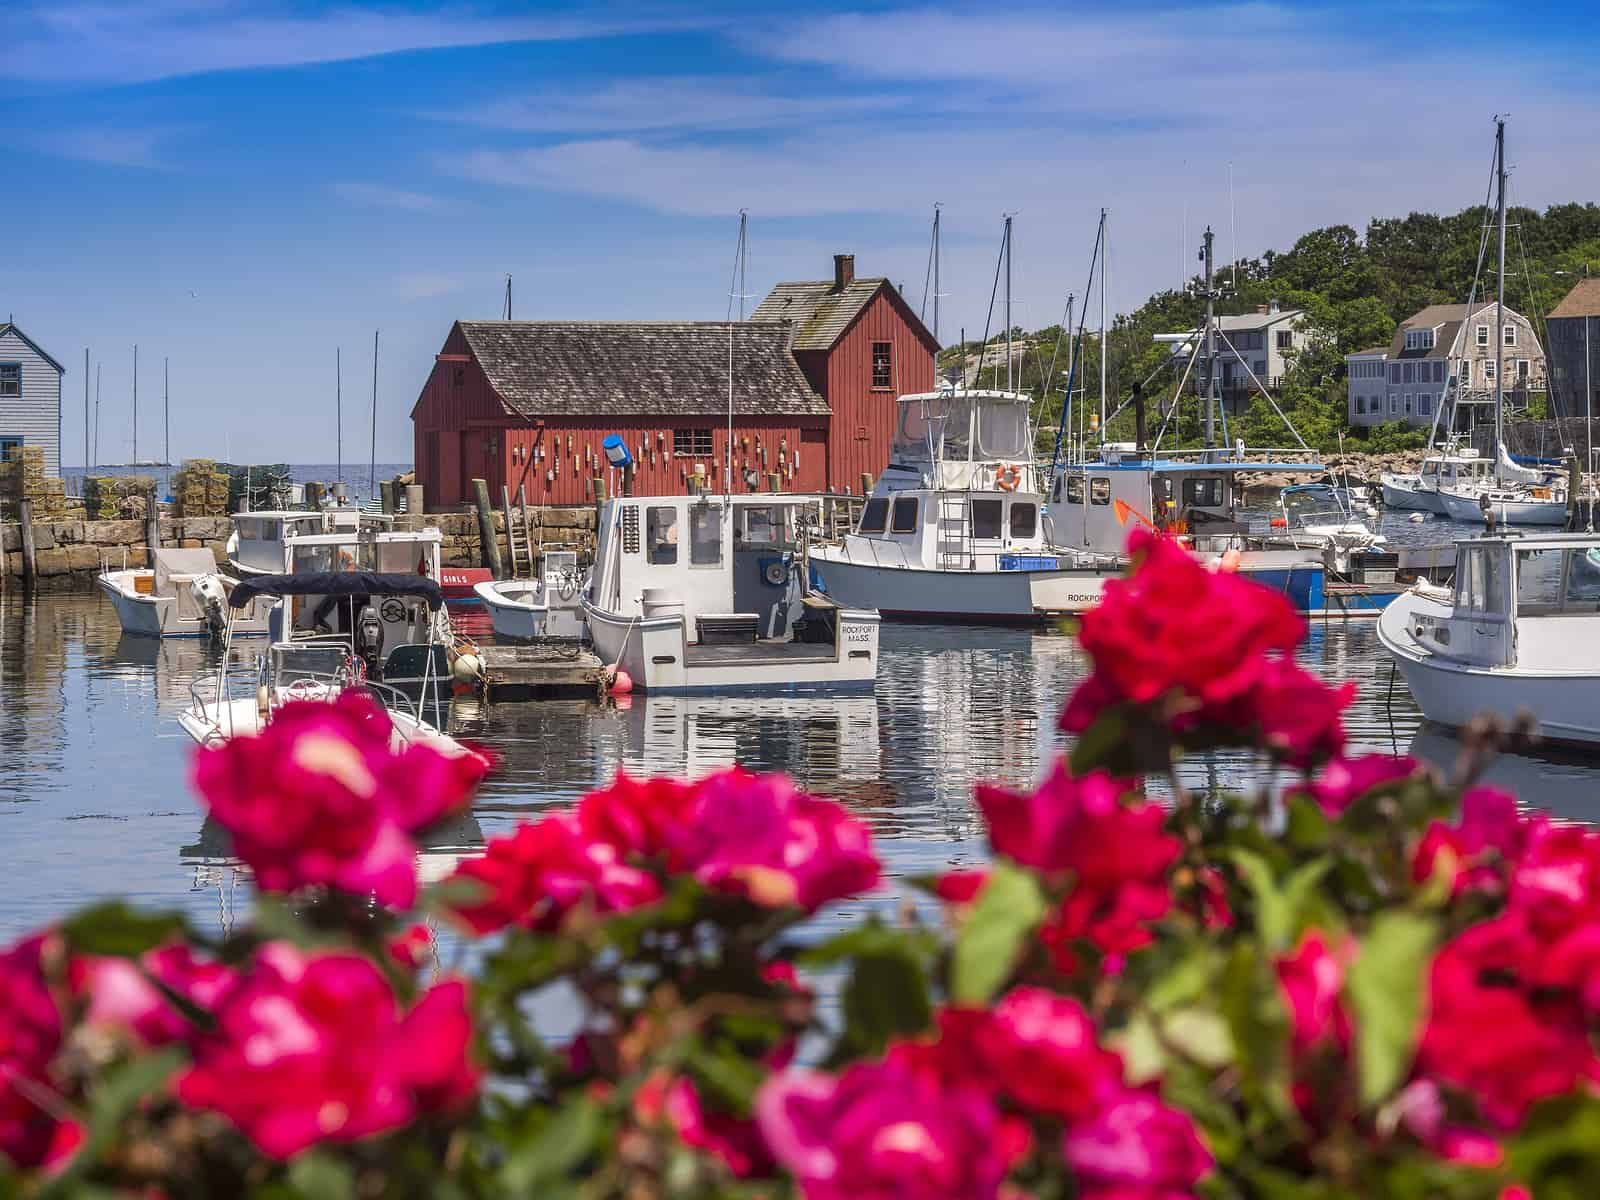 Motif #1, fisherman's shack in Rockport harbor, massachusetts, USA